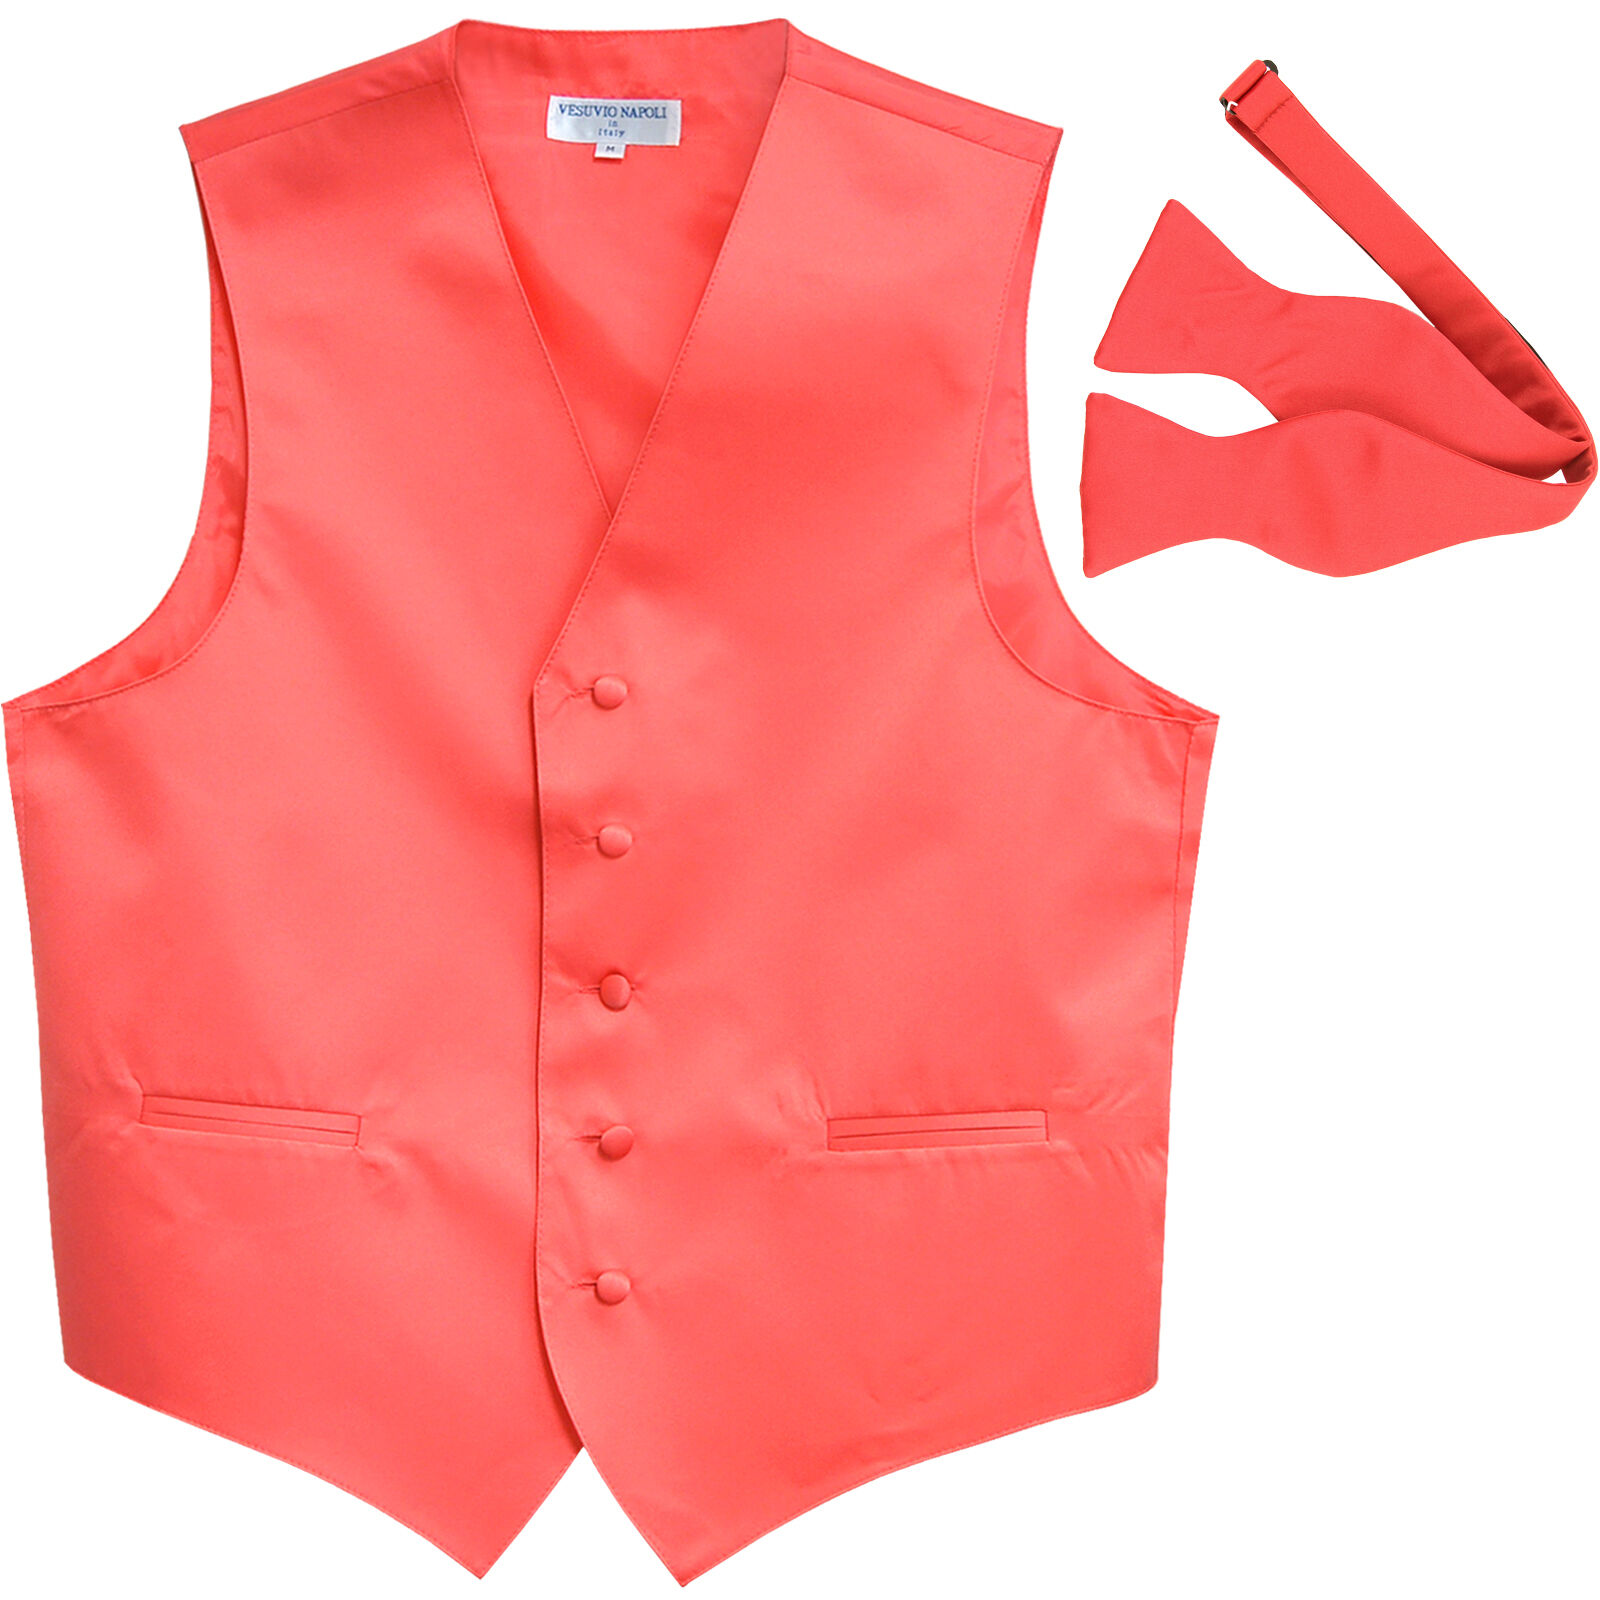 New polyester formal men's waistcoat tuxedo vest_self tied bowtie coral 5XL 6XL